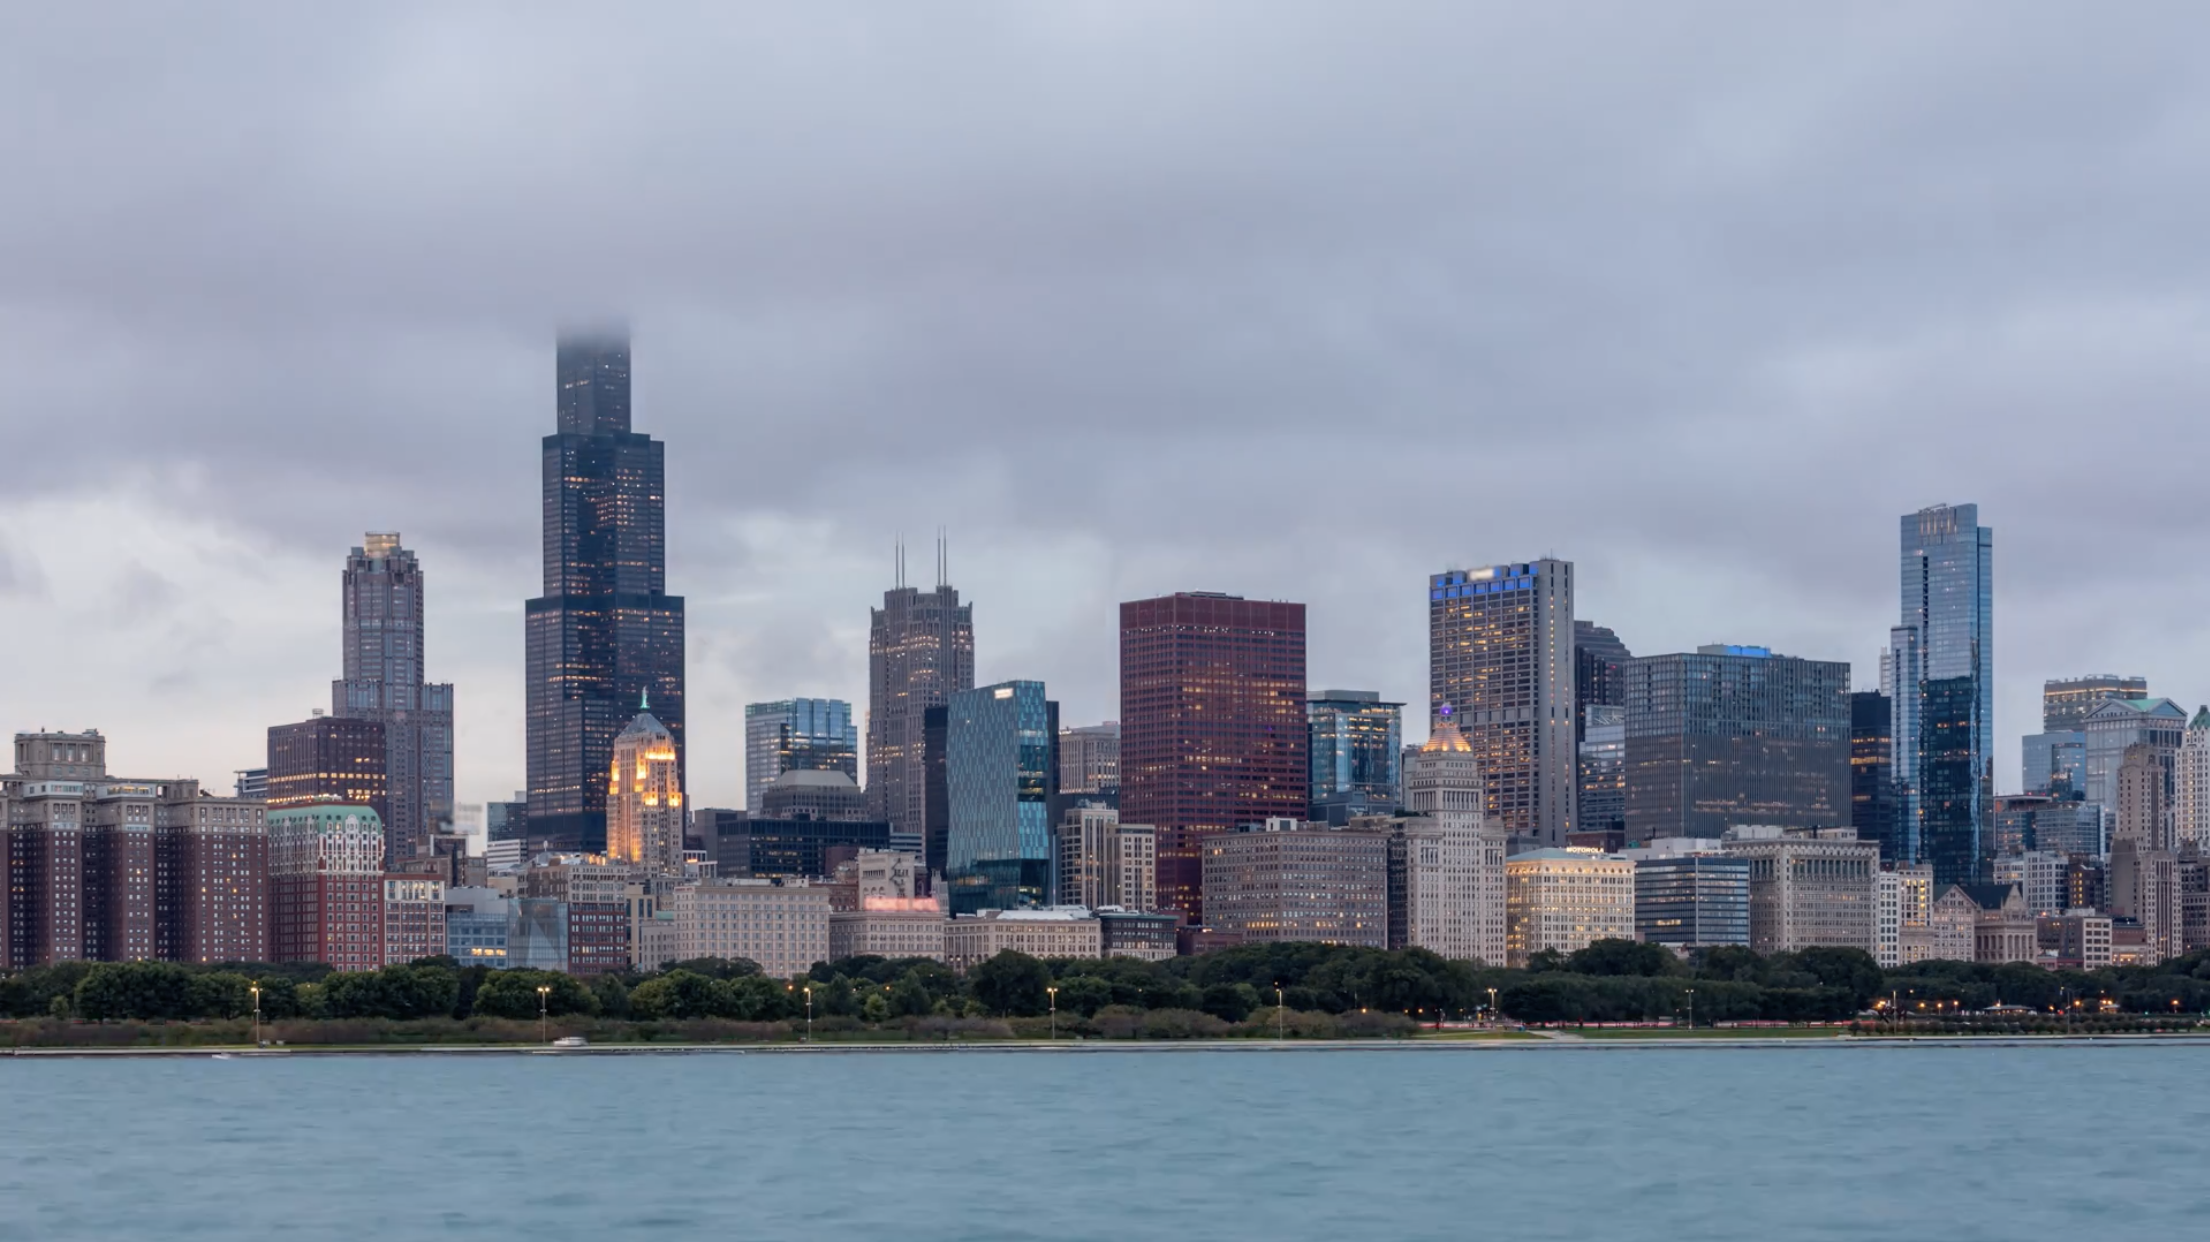 4k Chicago Skyline And Lake Michigan Cloudscape Day To Night Emeric S Timelapse